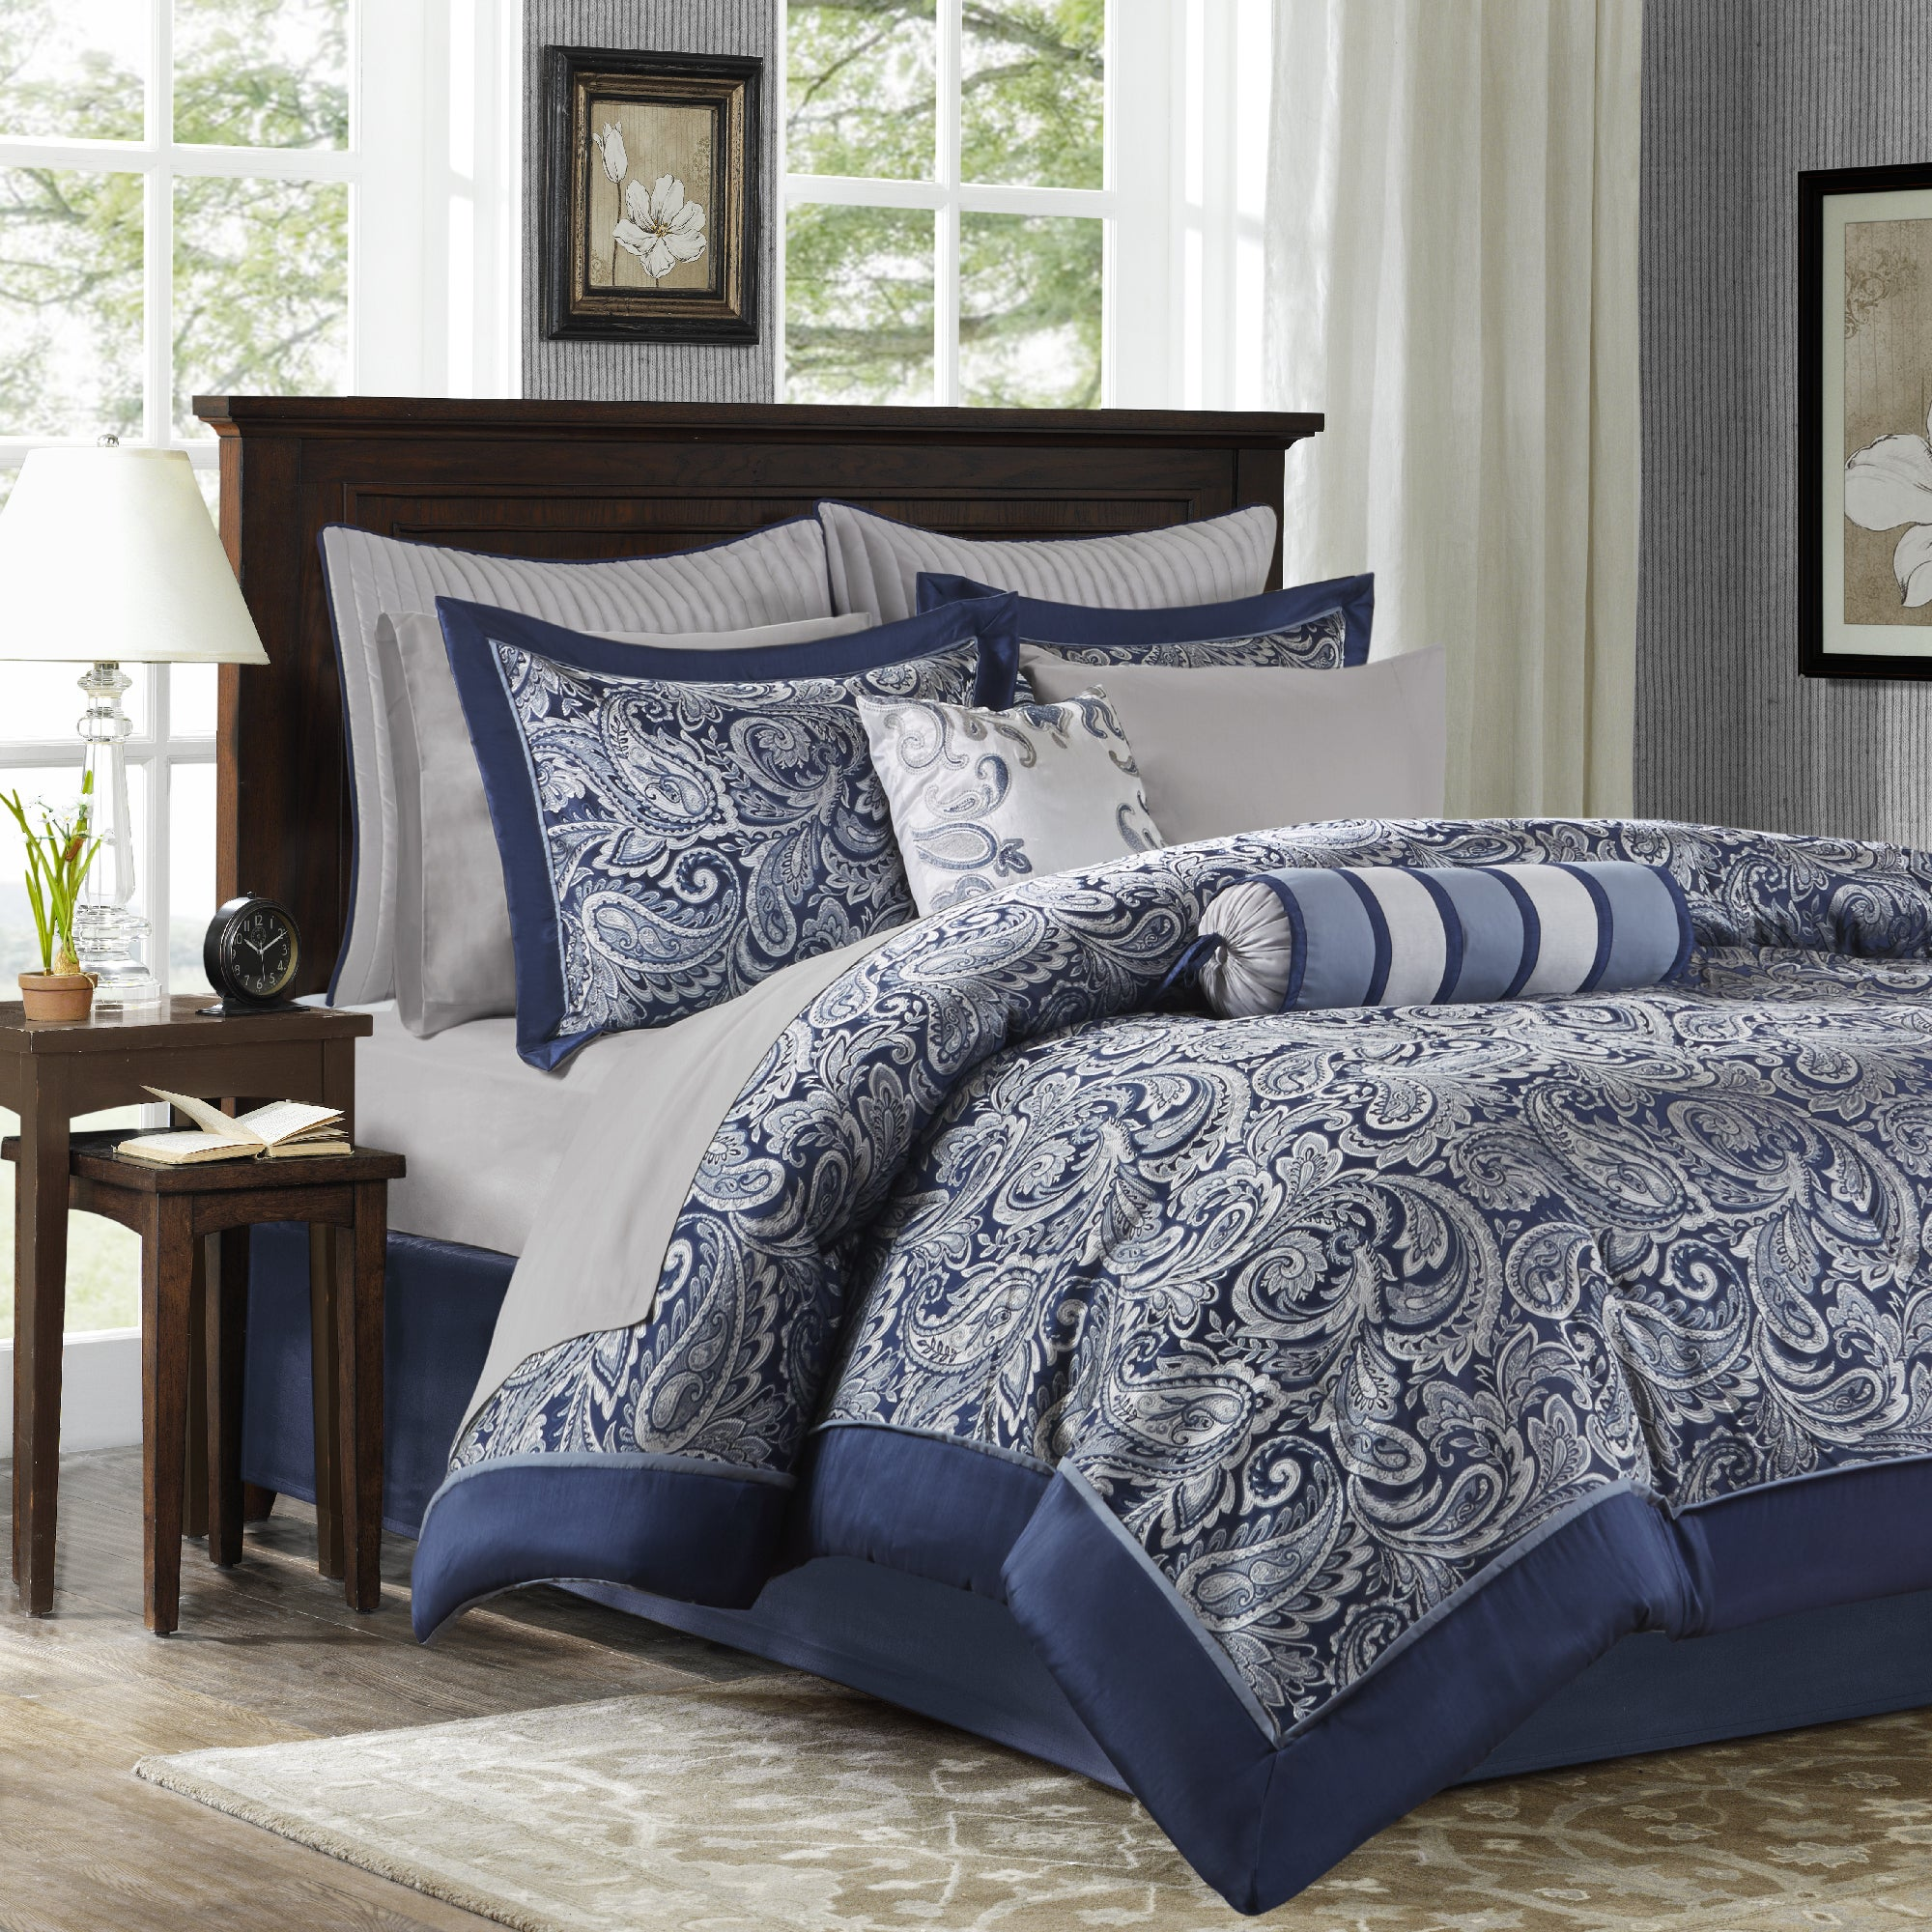 co target comforter aetherair bed comforters sets asli bedding sheets full ideas